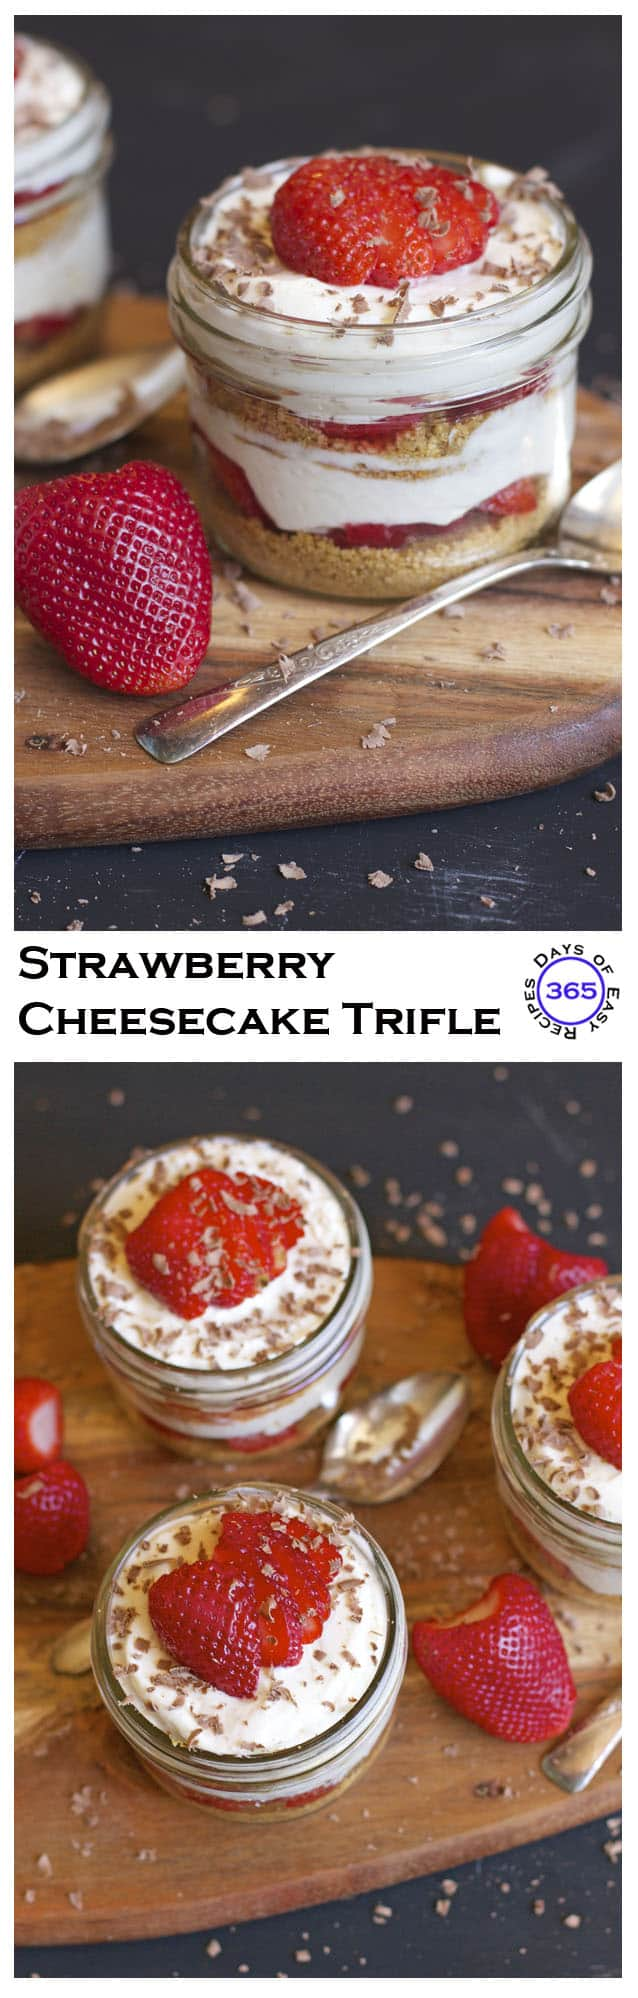 Light and fluffy Strawberry Cheesecake Trifle - serve in individual mason jars for the perfect picnic dessert | 365 Days of Easy Recipes